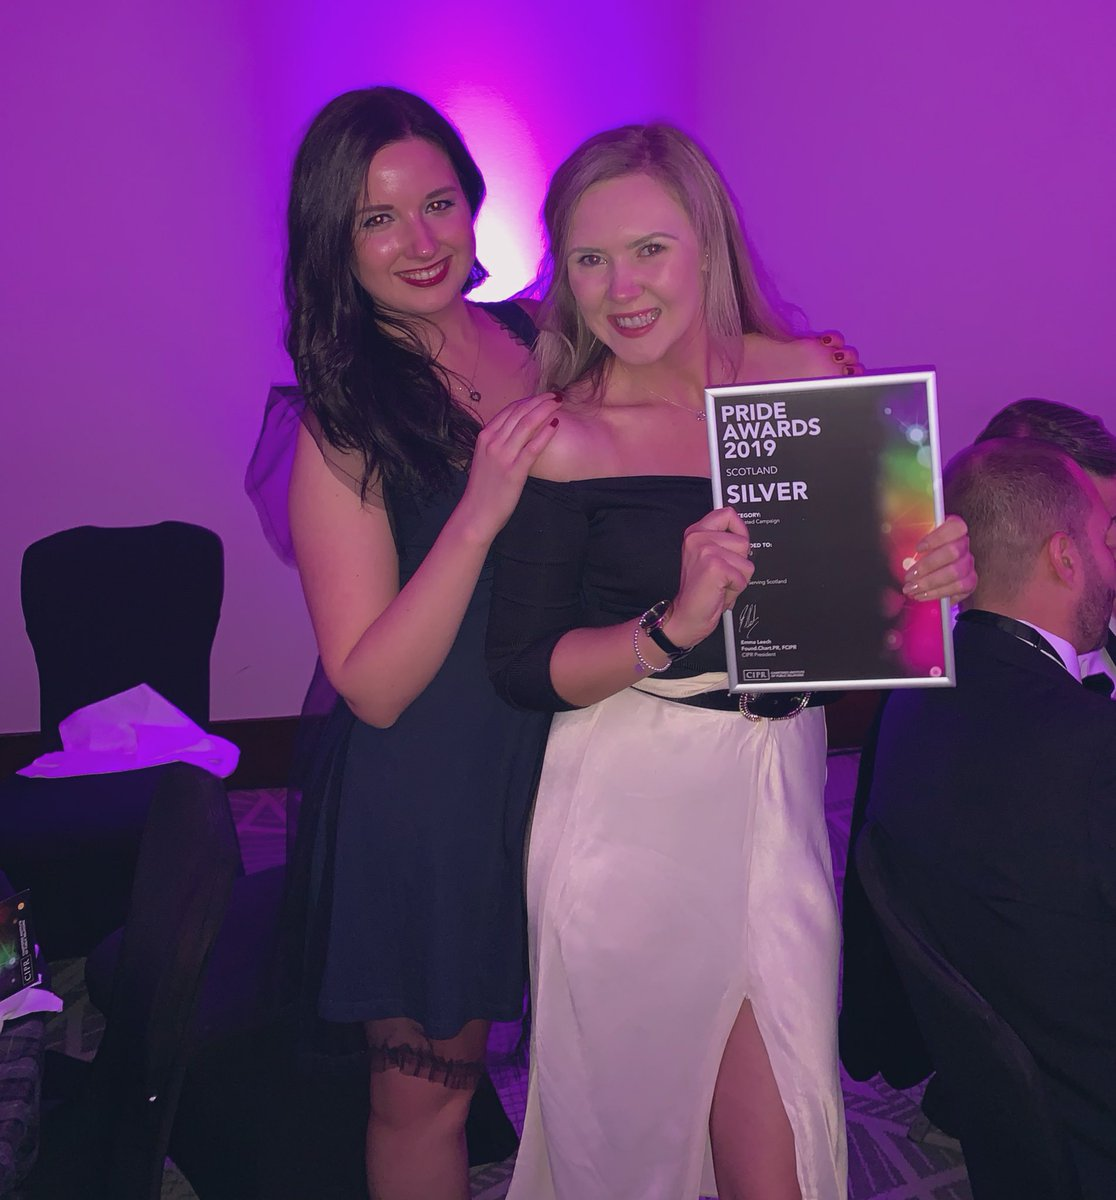 Katie and Anna, part of our fab @marksandspencer PR team with our Silver award 🙌🔥